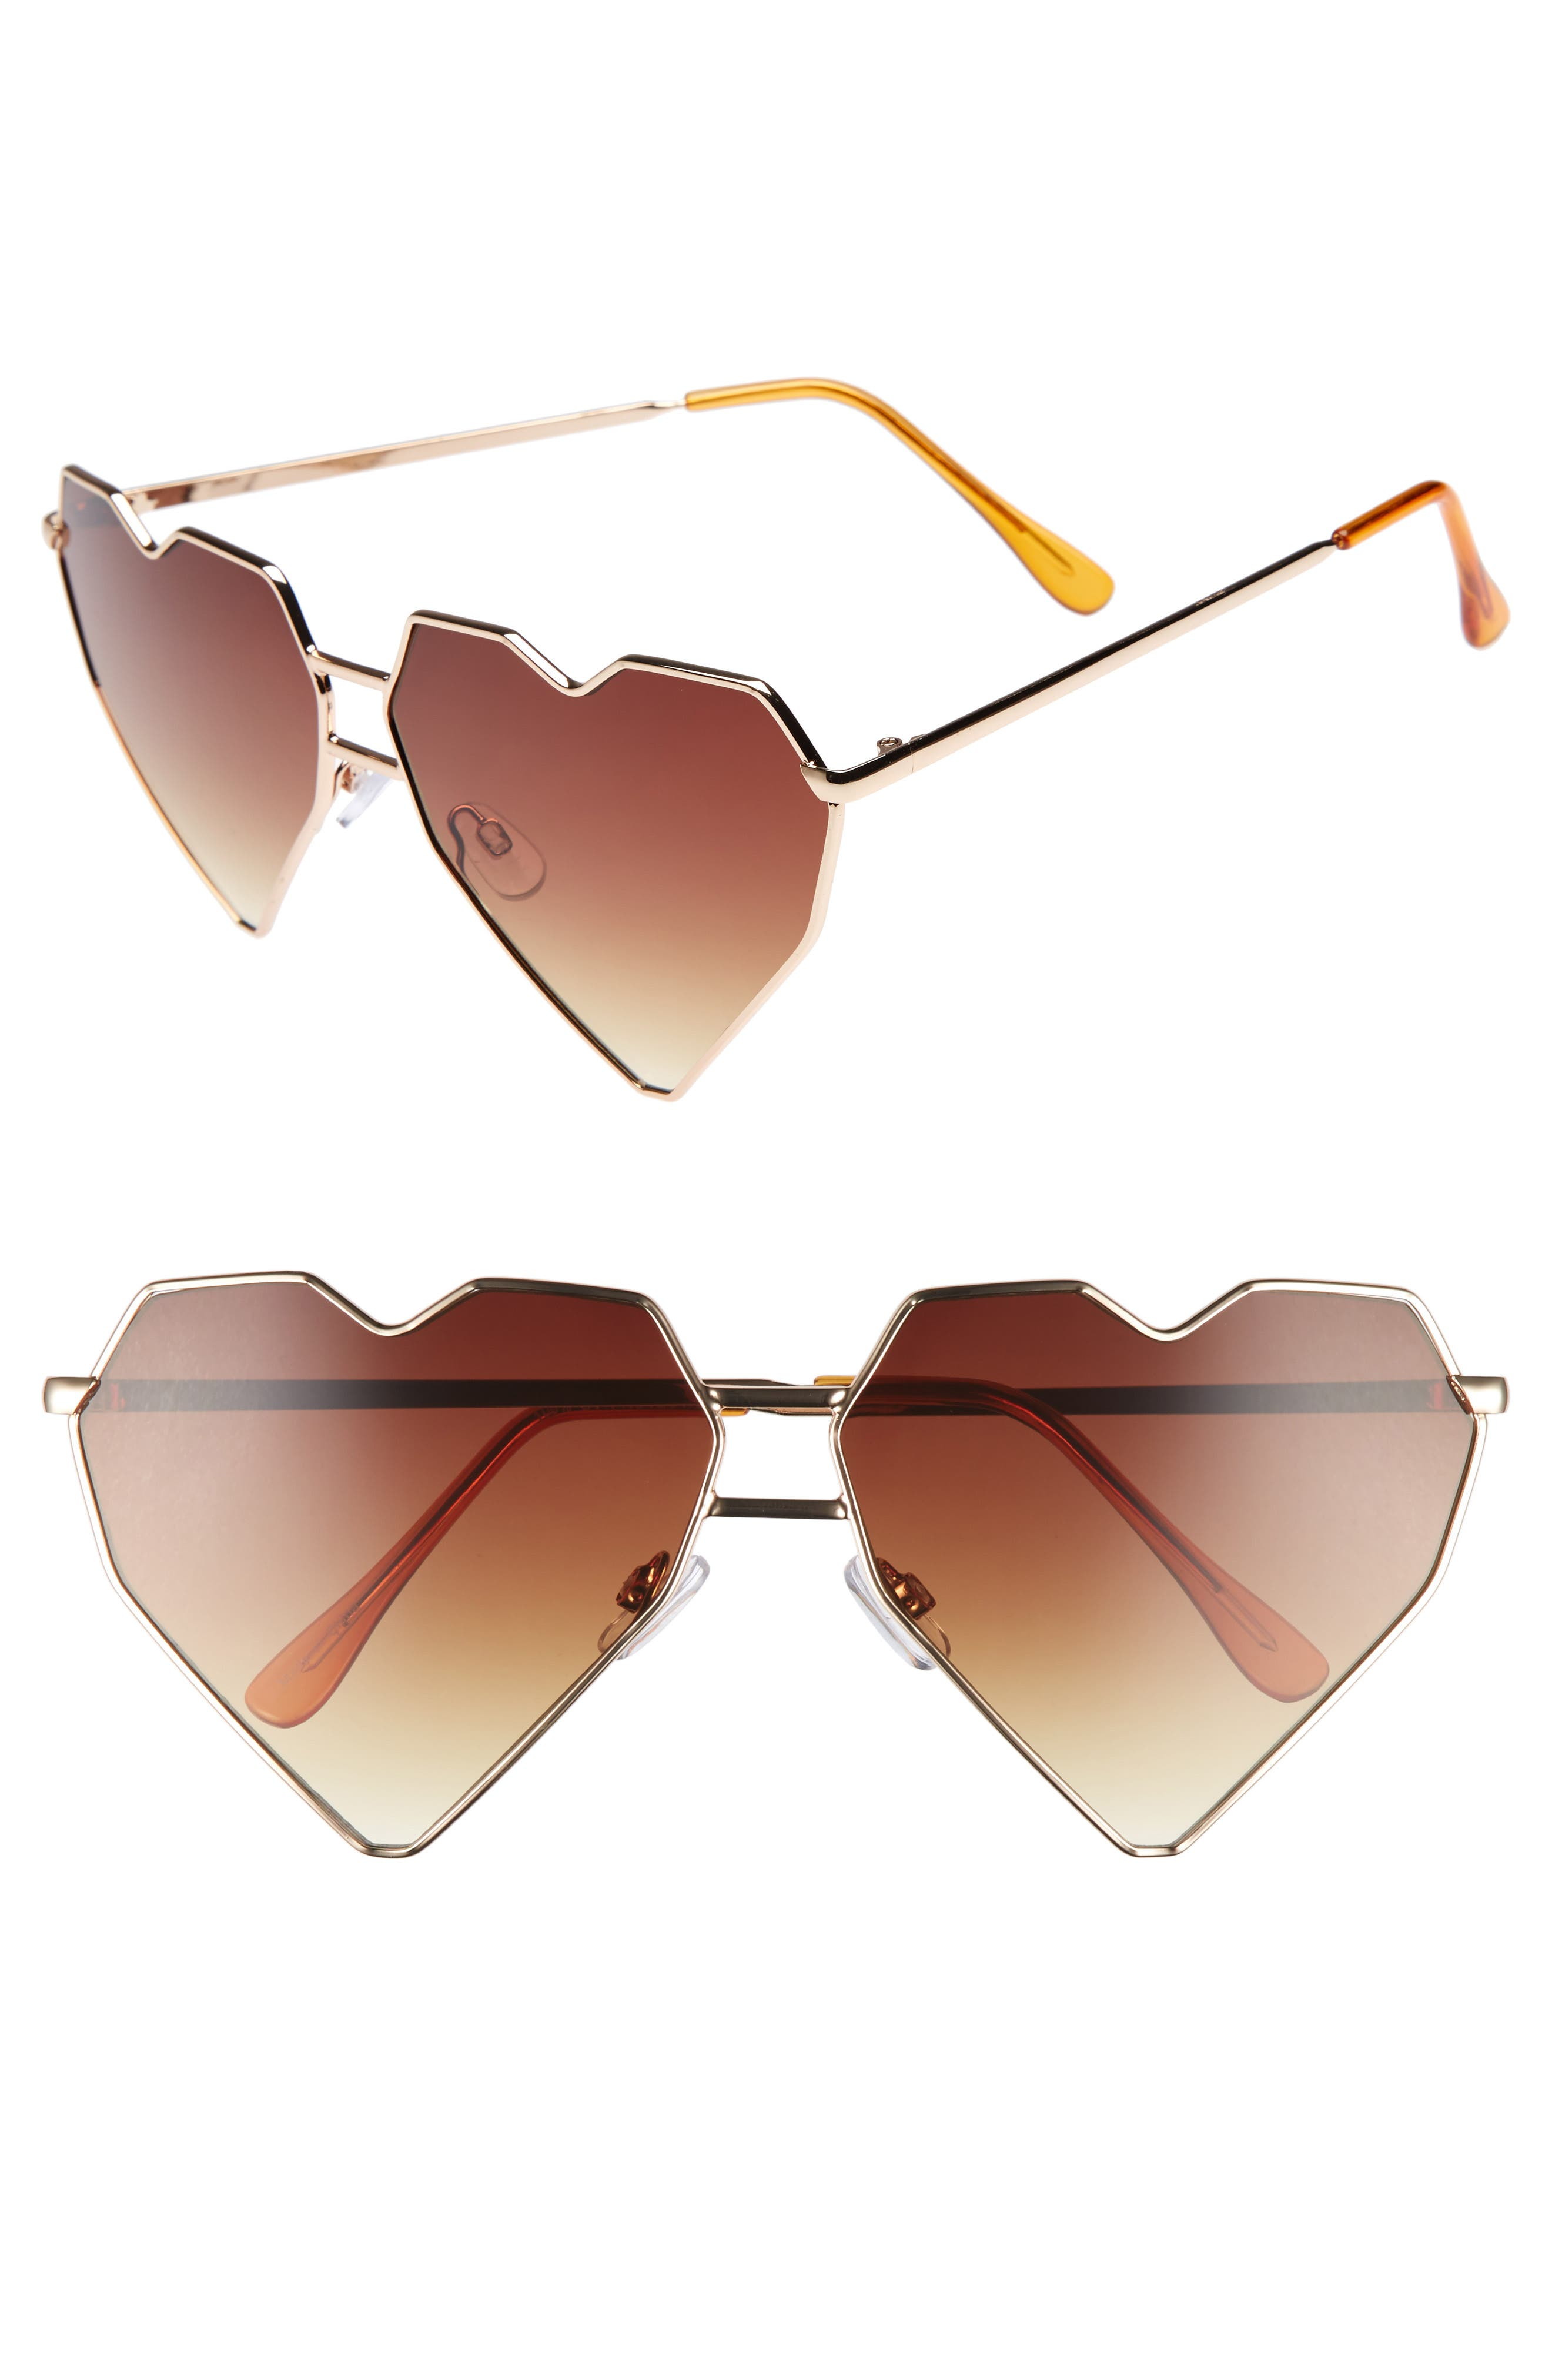 64mm Heart Shaped Sunglasses,                         Main,                         color, Gold